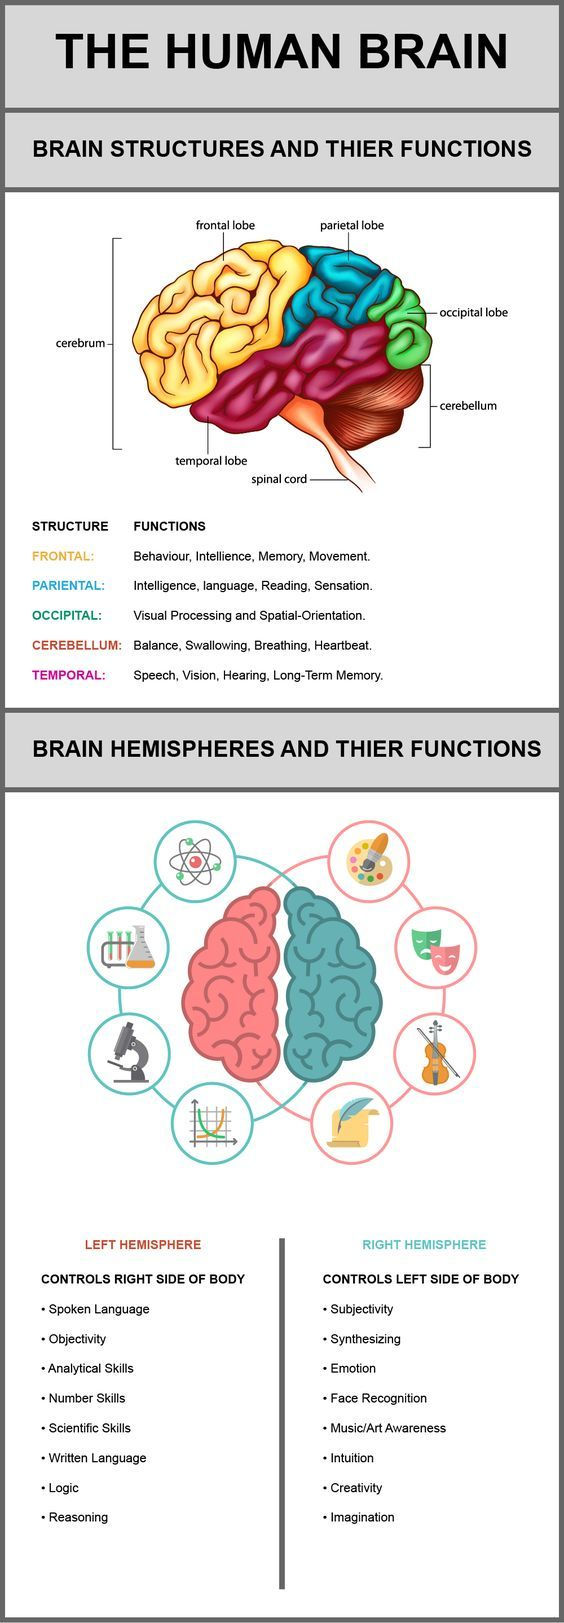 The Human Brain, Its Structures And Their Functions   Visual.ly